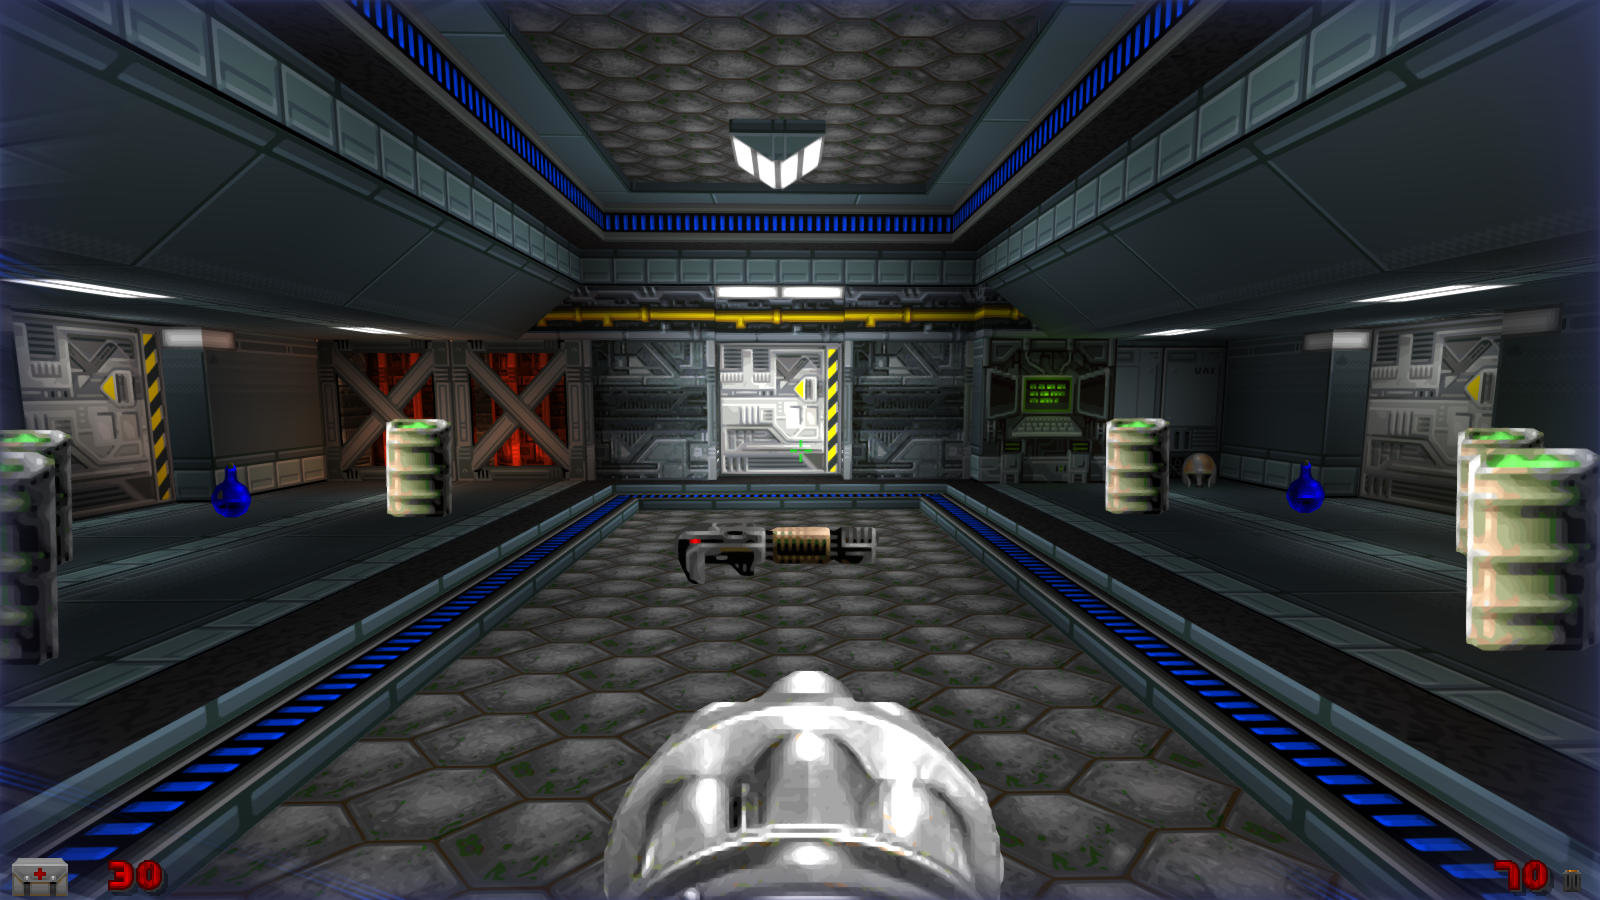 DRRP Doom RPG Remake Project SEC4 Sector 4 Plasma Rifle Plasmagun Barrel Screenshot